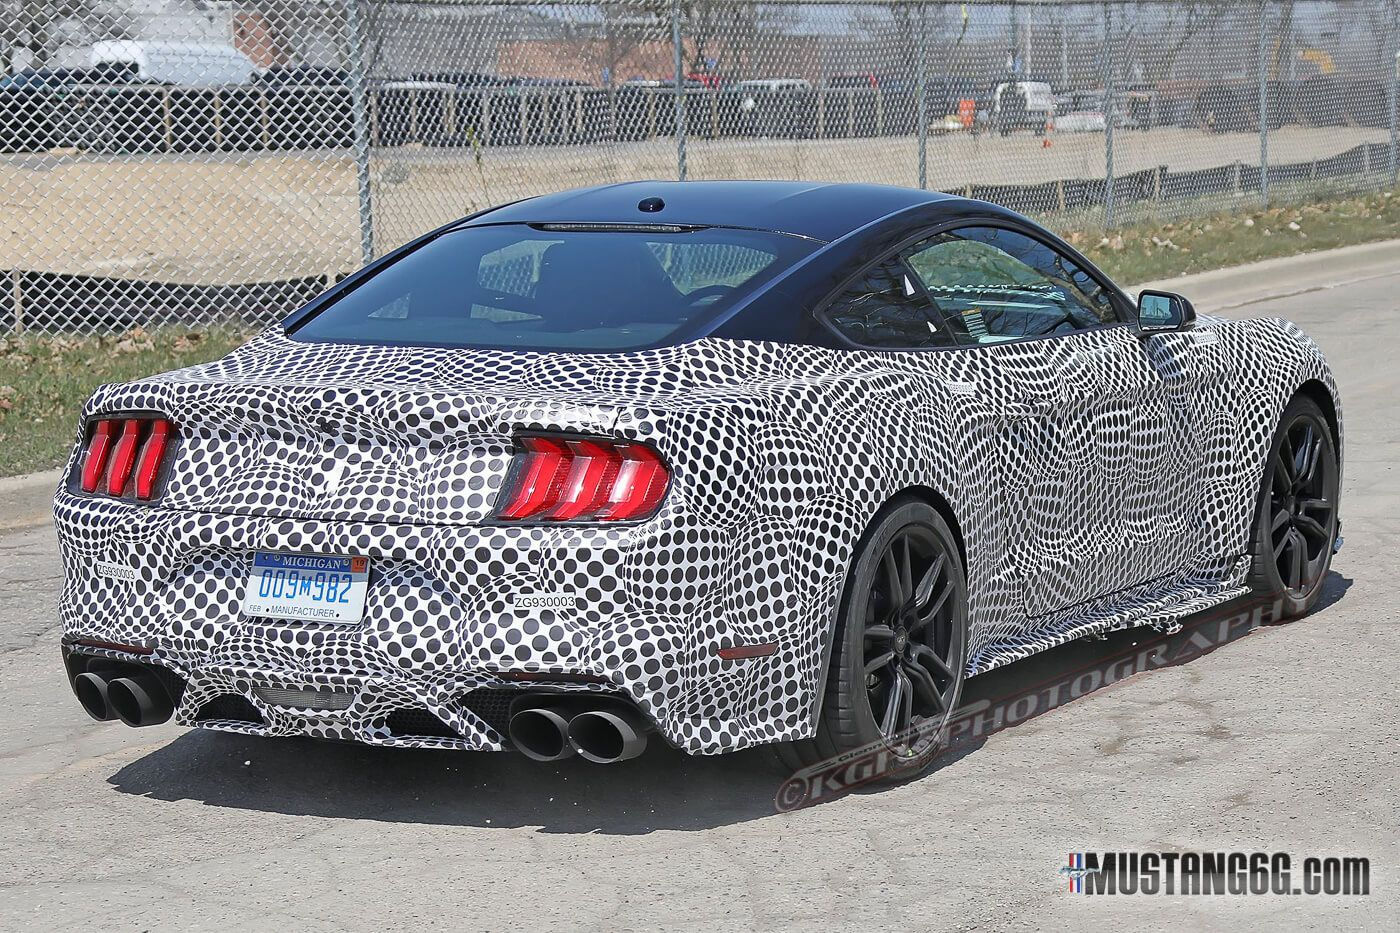 46 New Spy Shots Ford Mustang Svt Gt 500 Exterior